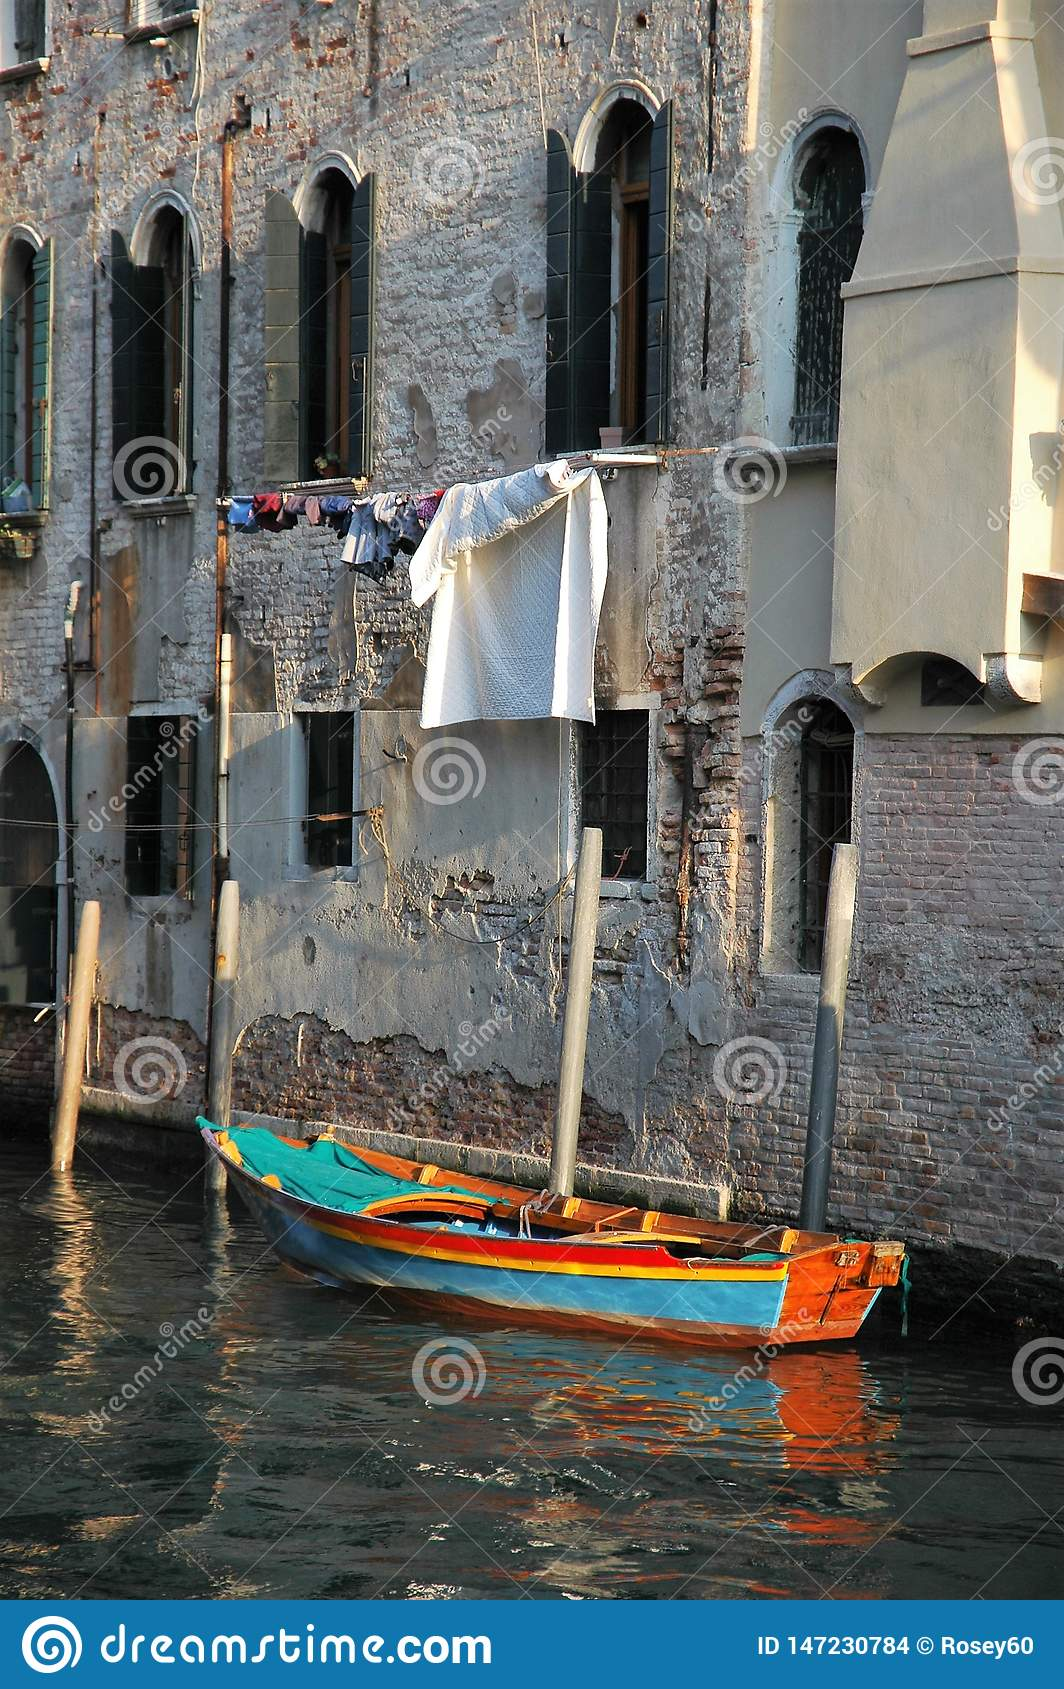 Colourful boat tied to old building with washing hanging in background.